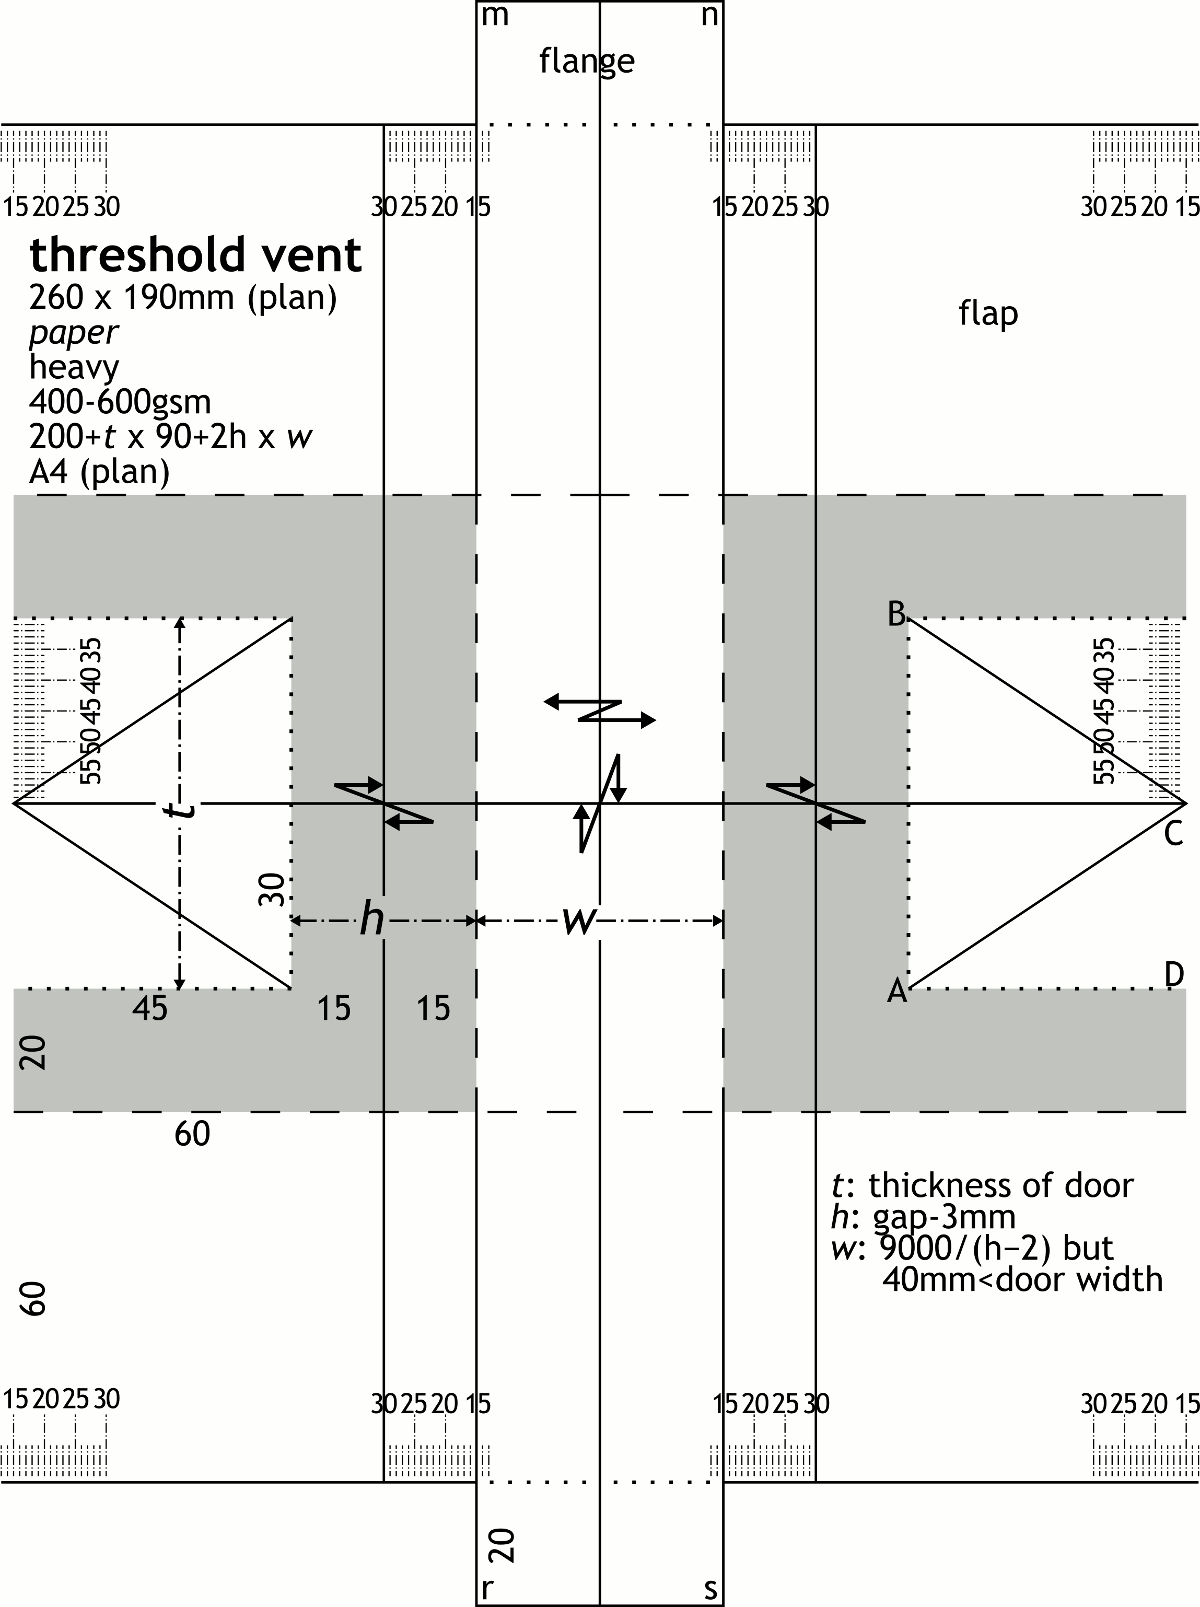 plan: threshold vent